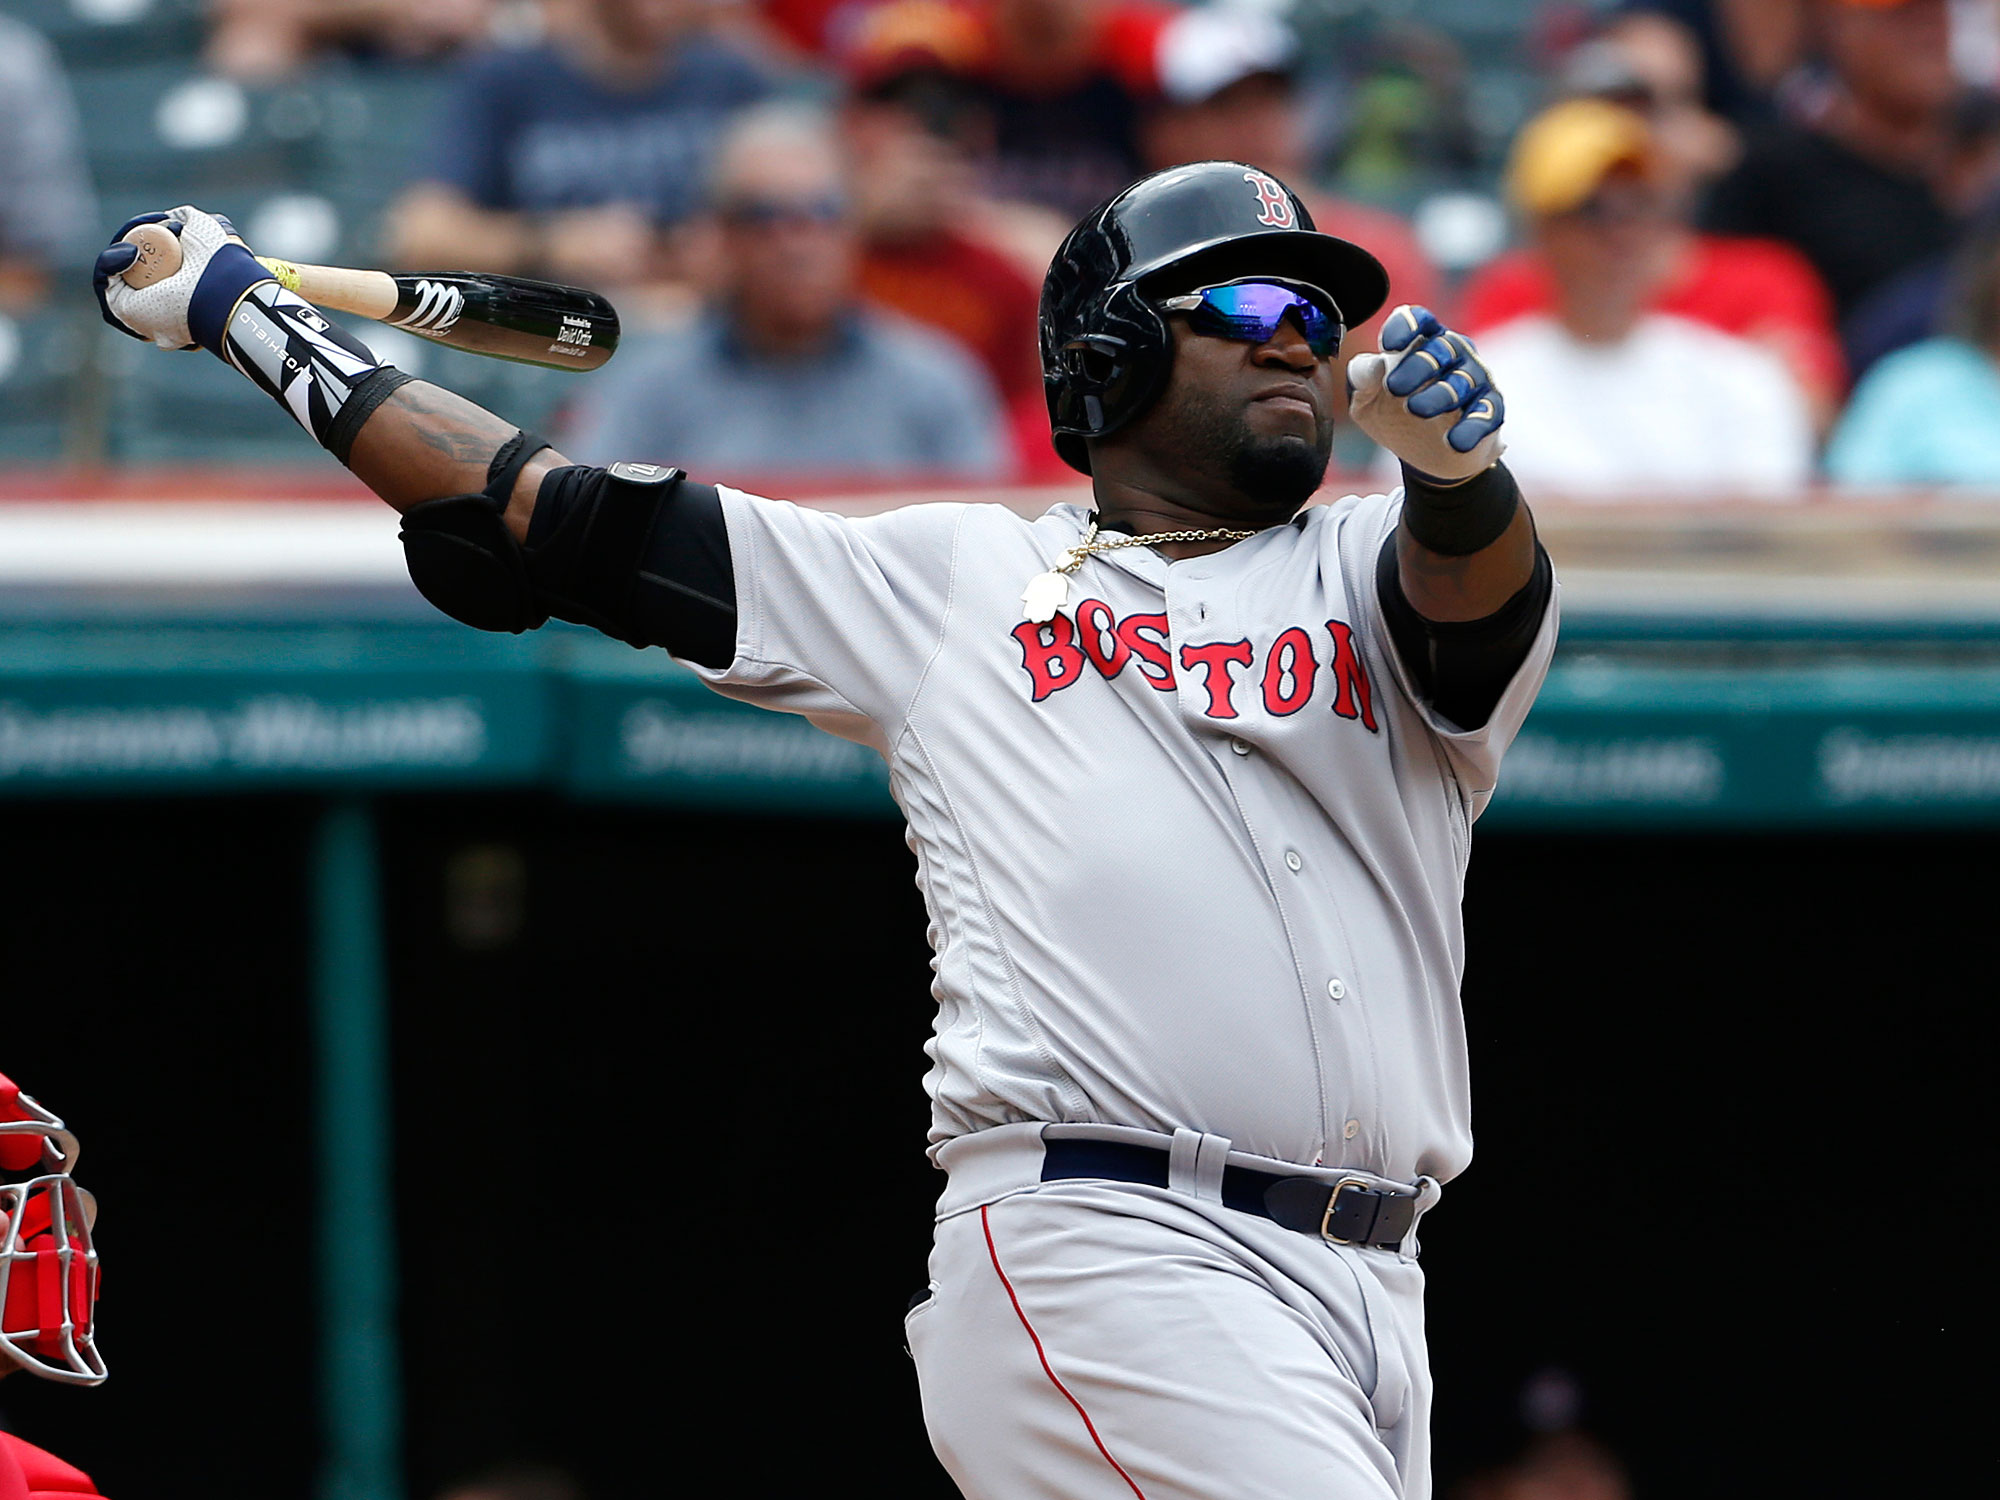 Red Sox David Ortiz on pace for greatest farewell season ever  SIcom